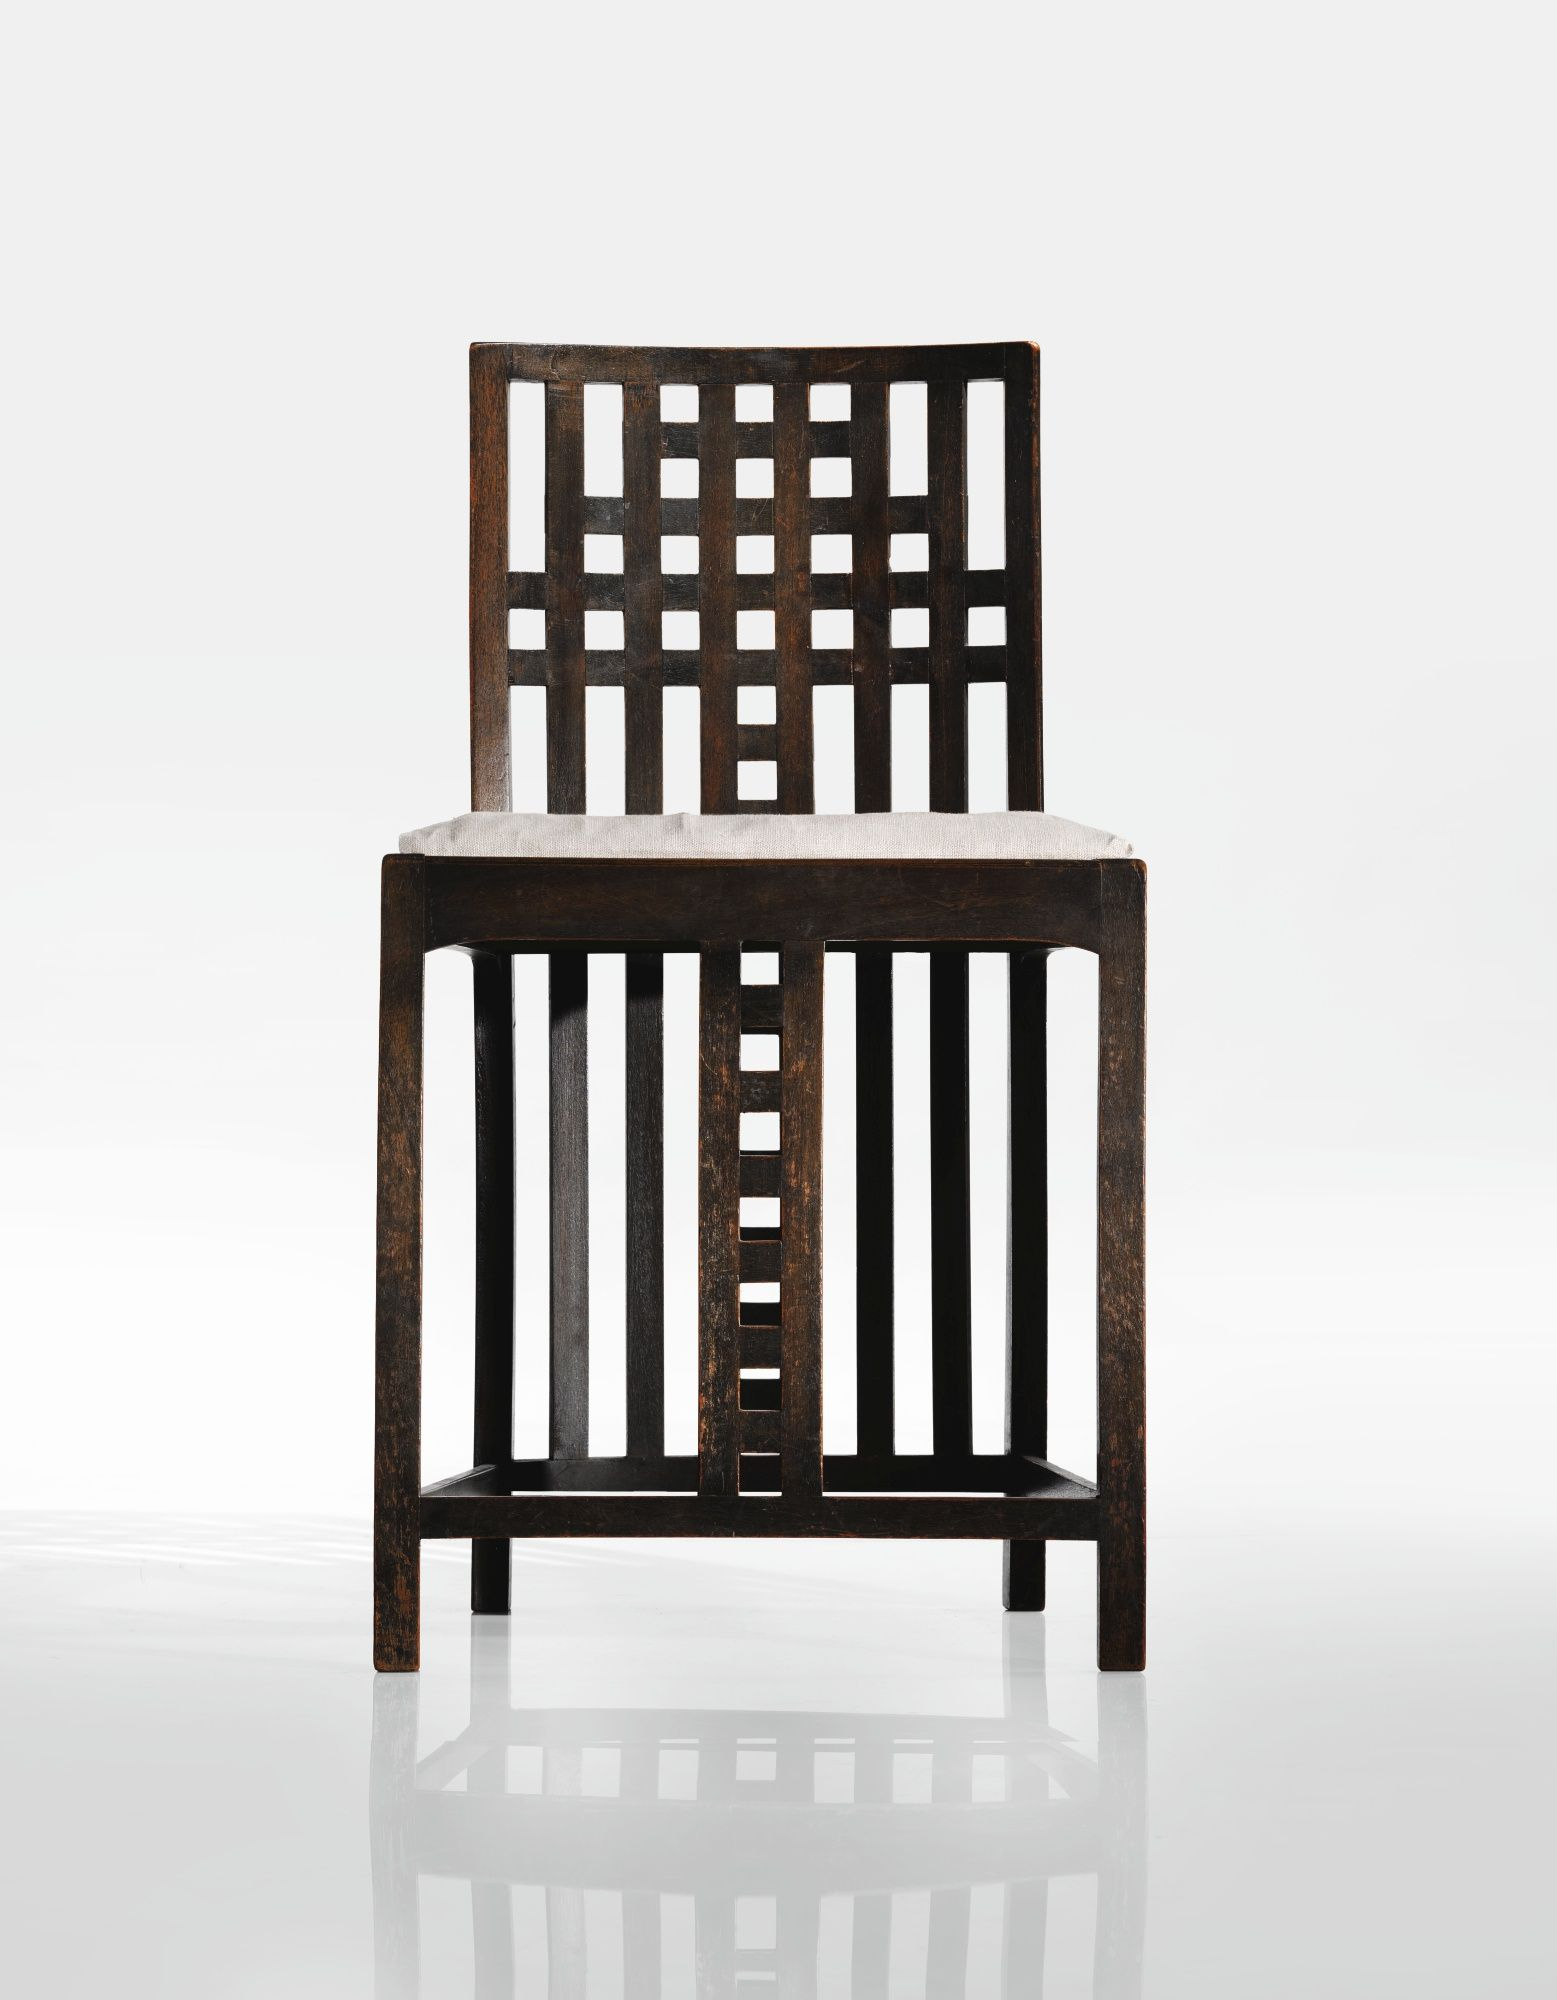 Charles rennie mackintosh side chair from the white bedroom houshill nitshill glasgow ebonized sycamore and canvas upholstery 28 7 8 x 15 3 4 x 16 1 2